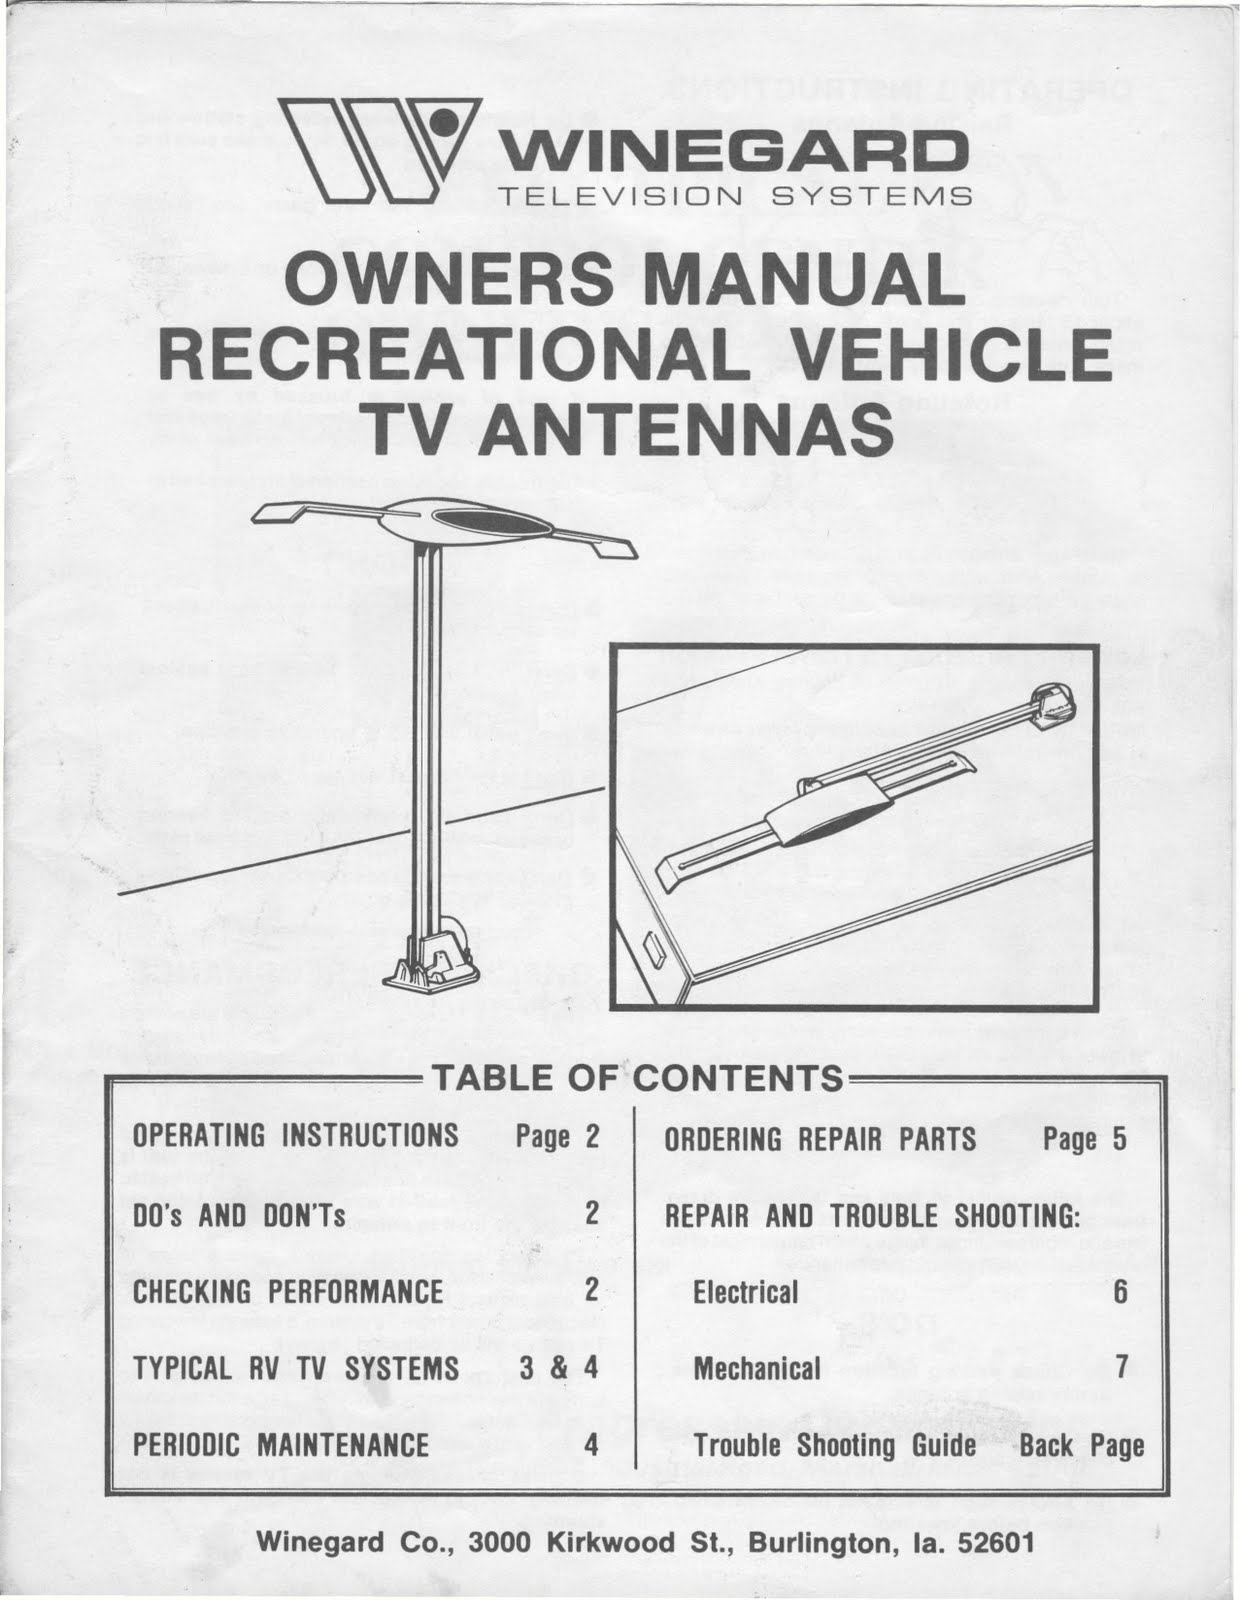 winegard+rv+tv+antenna0001%5B1%5D 001 rv antenna diagram omni directional rv antenna \u2022 wiring diagrams  at webbmarketing.co